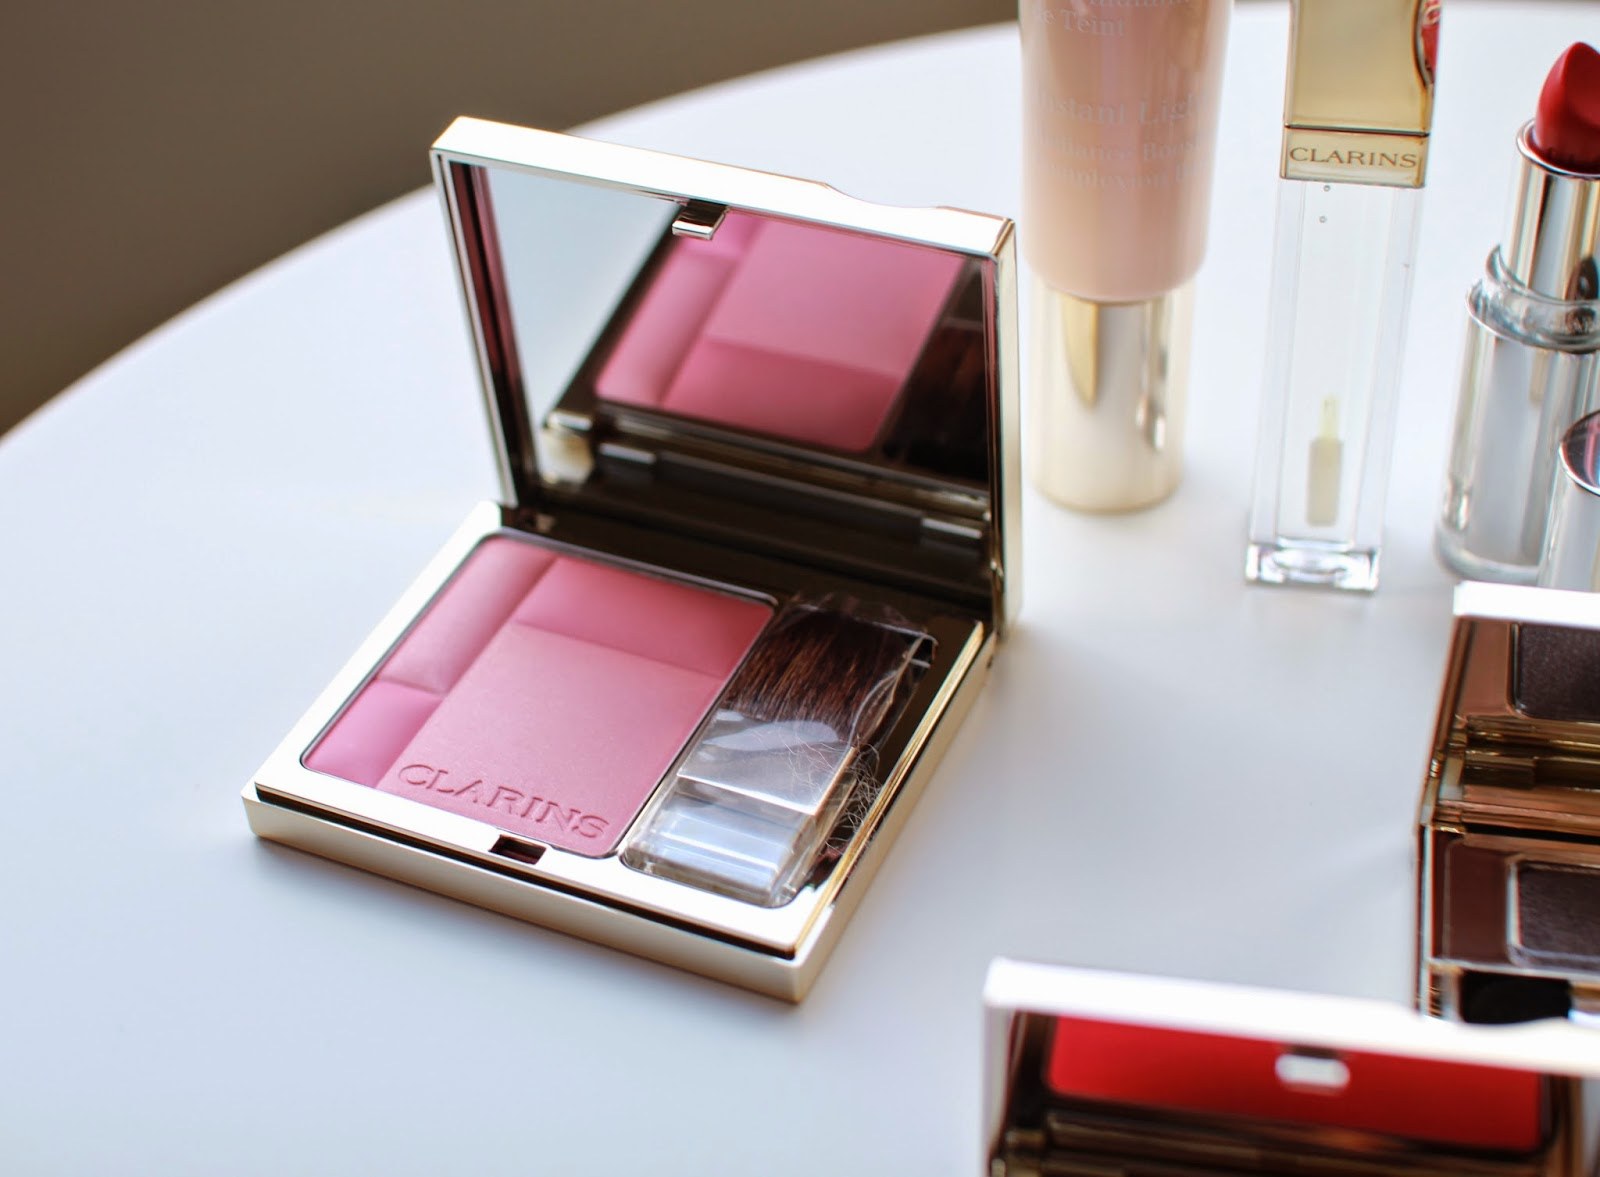 Clarins Blush in Miami Pink